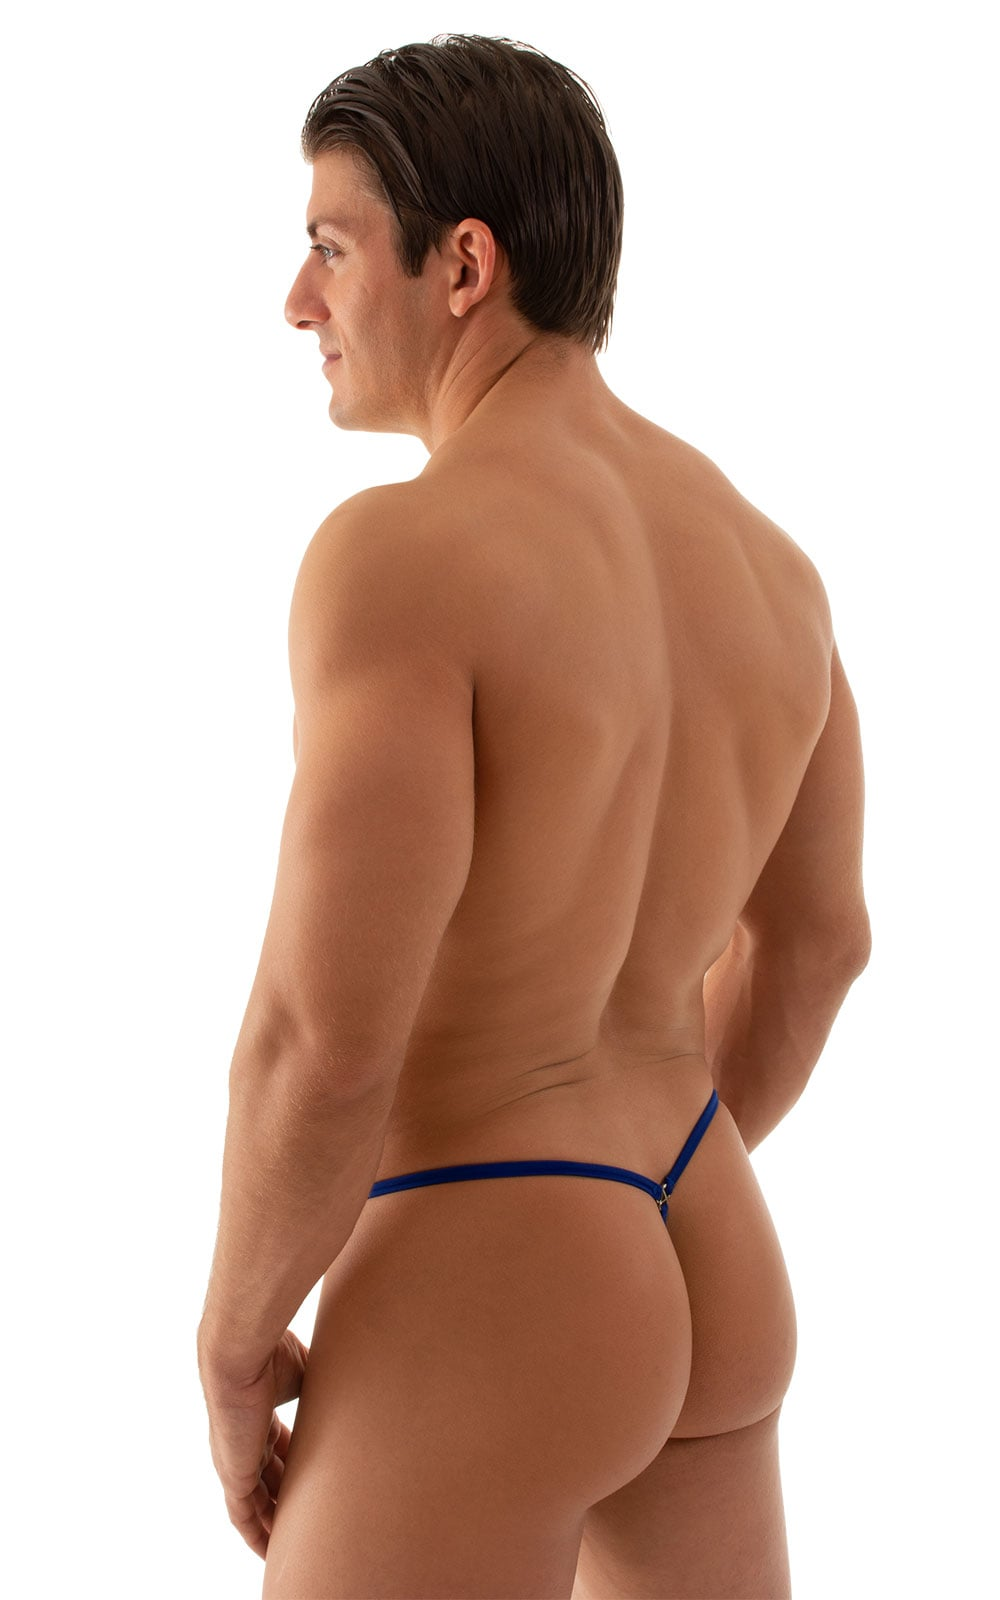 G String Swimsuit - Adjustable Pouch in Semi Sheer ThinSKINZ Royal Blue 3